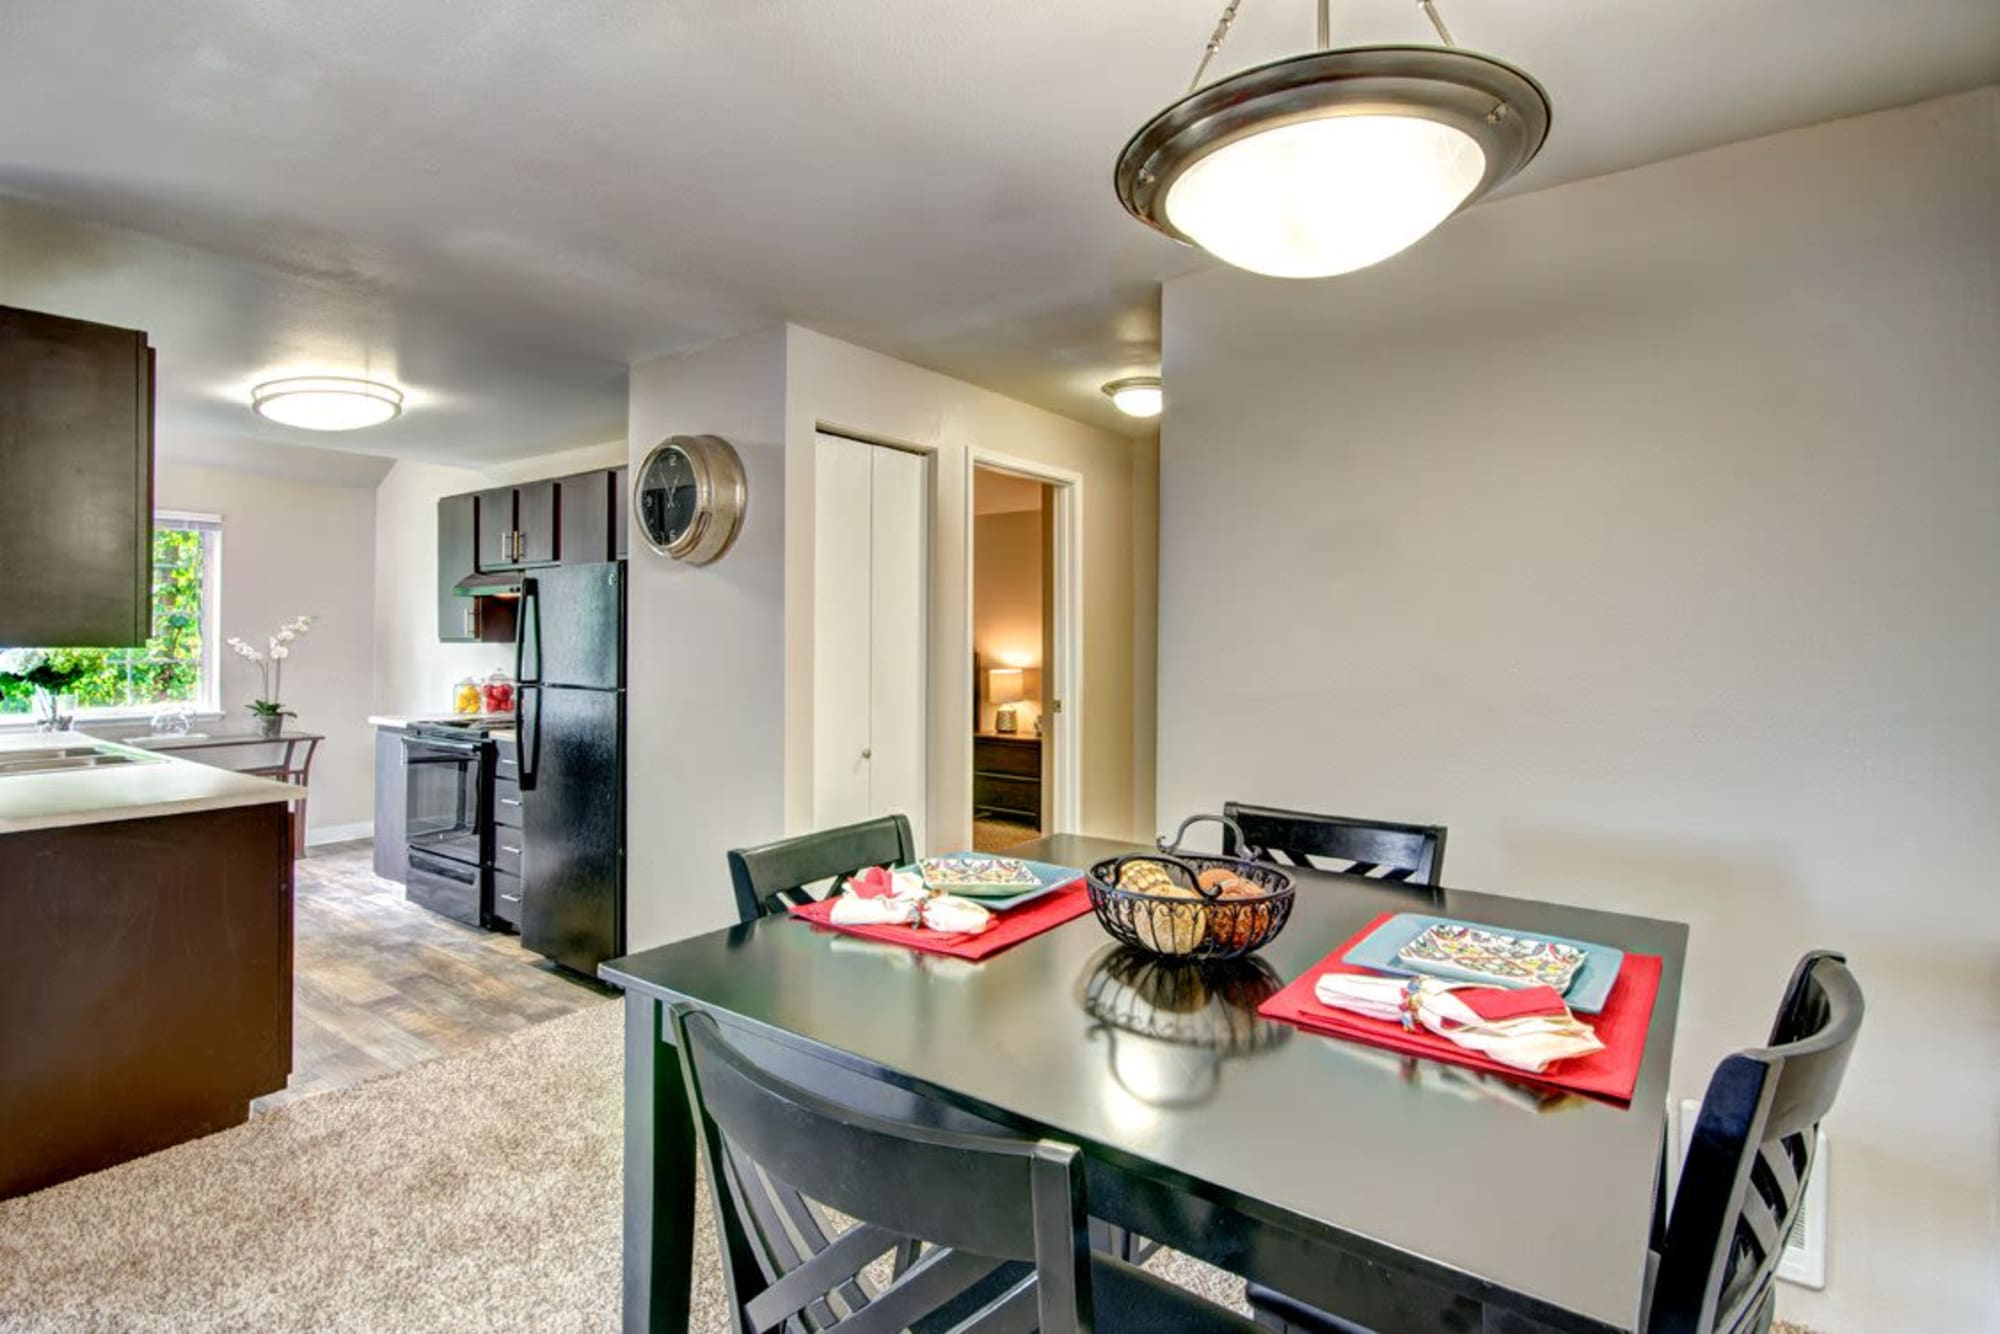 The dining room adjacent to the kitchen in an apartment at Wellington Apartment Homes in Silverdale, Washington